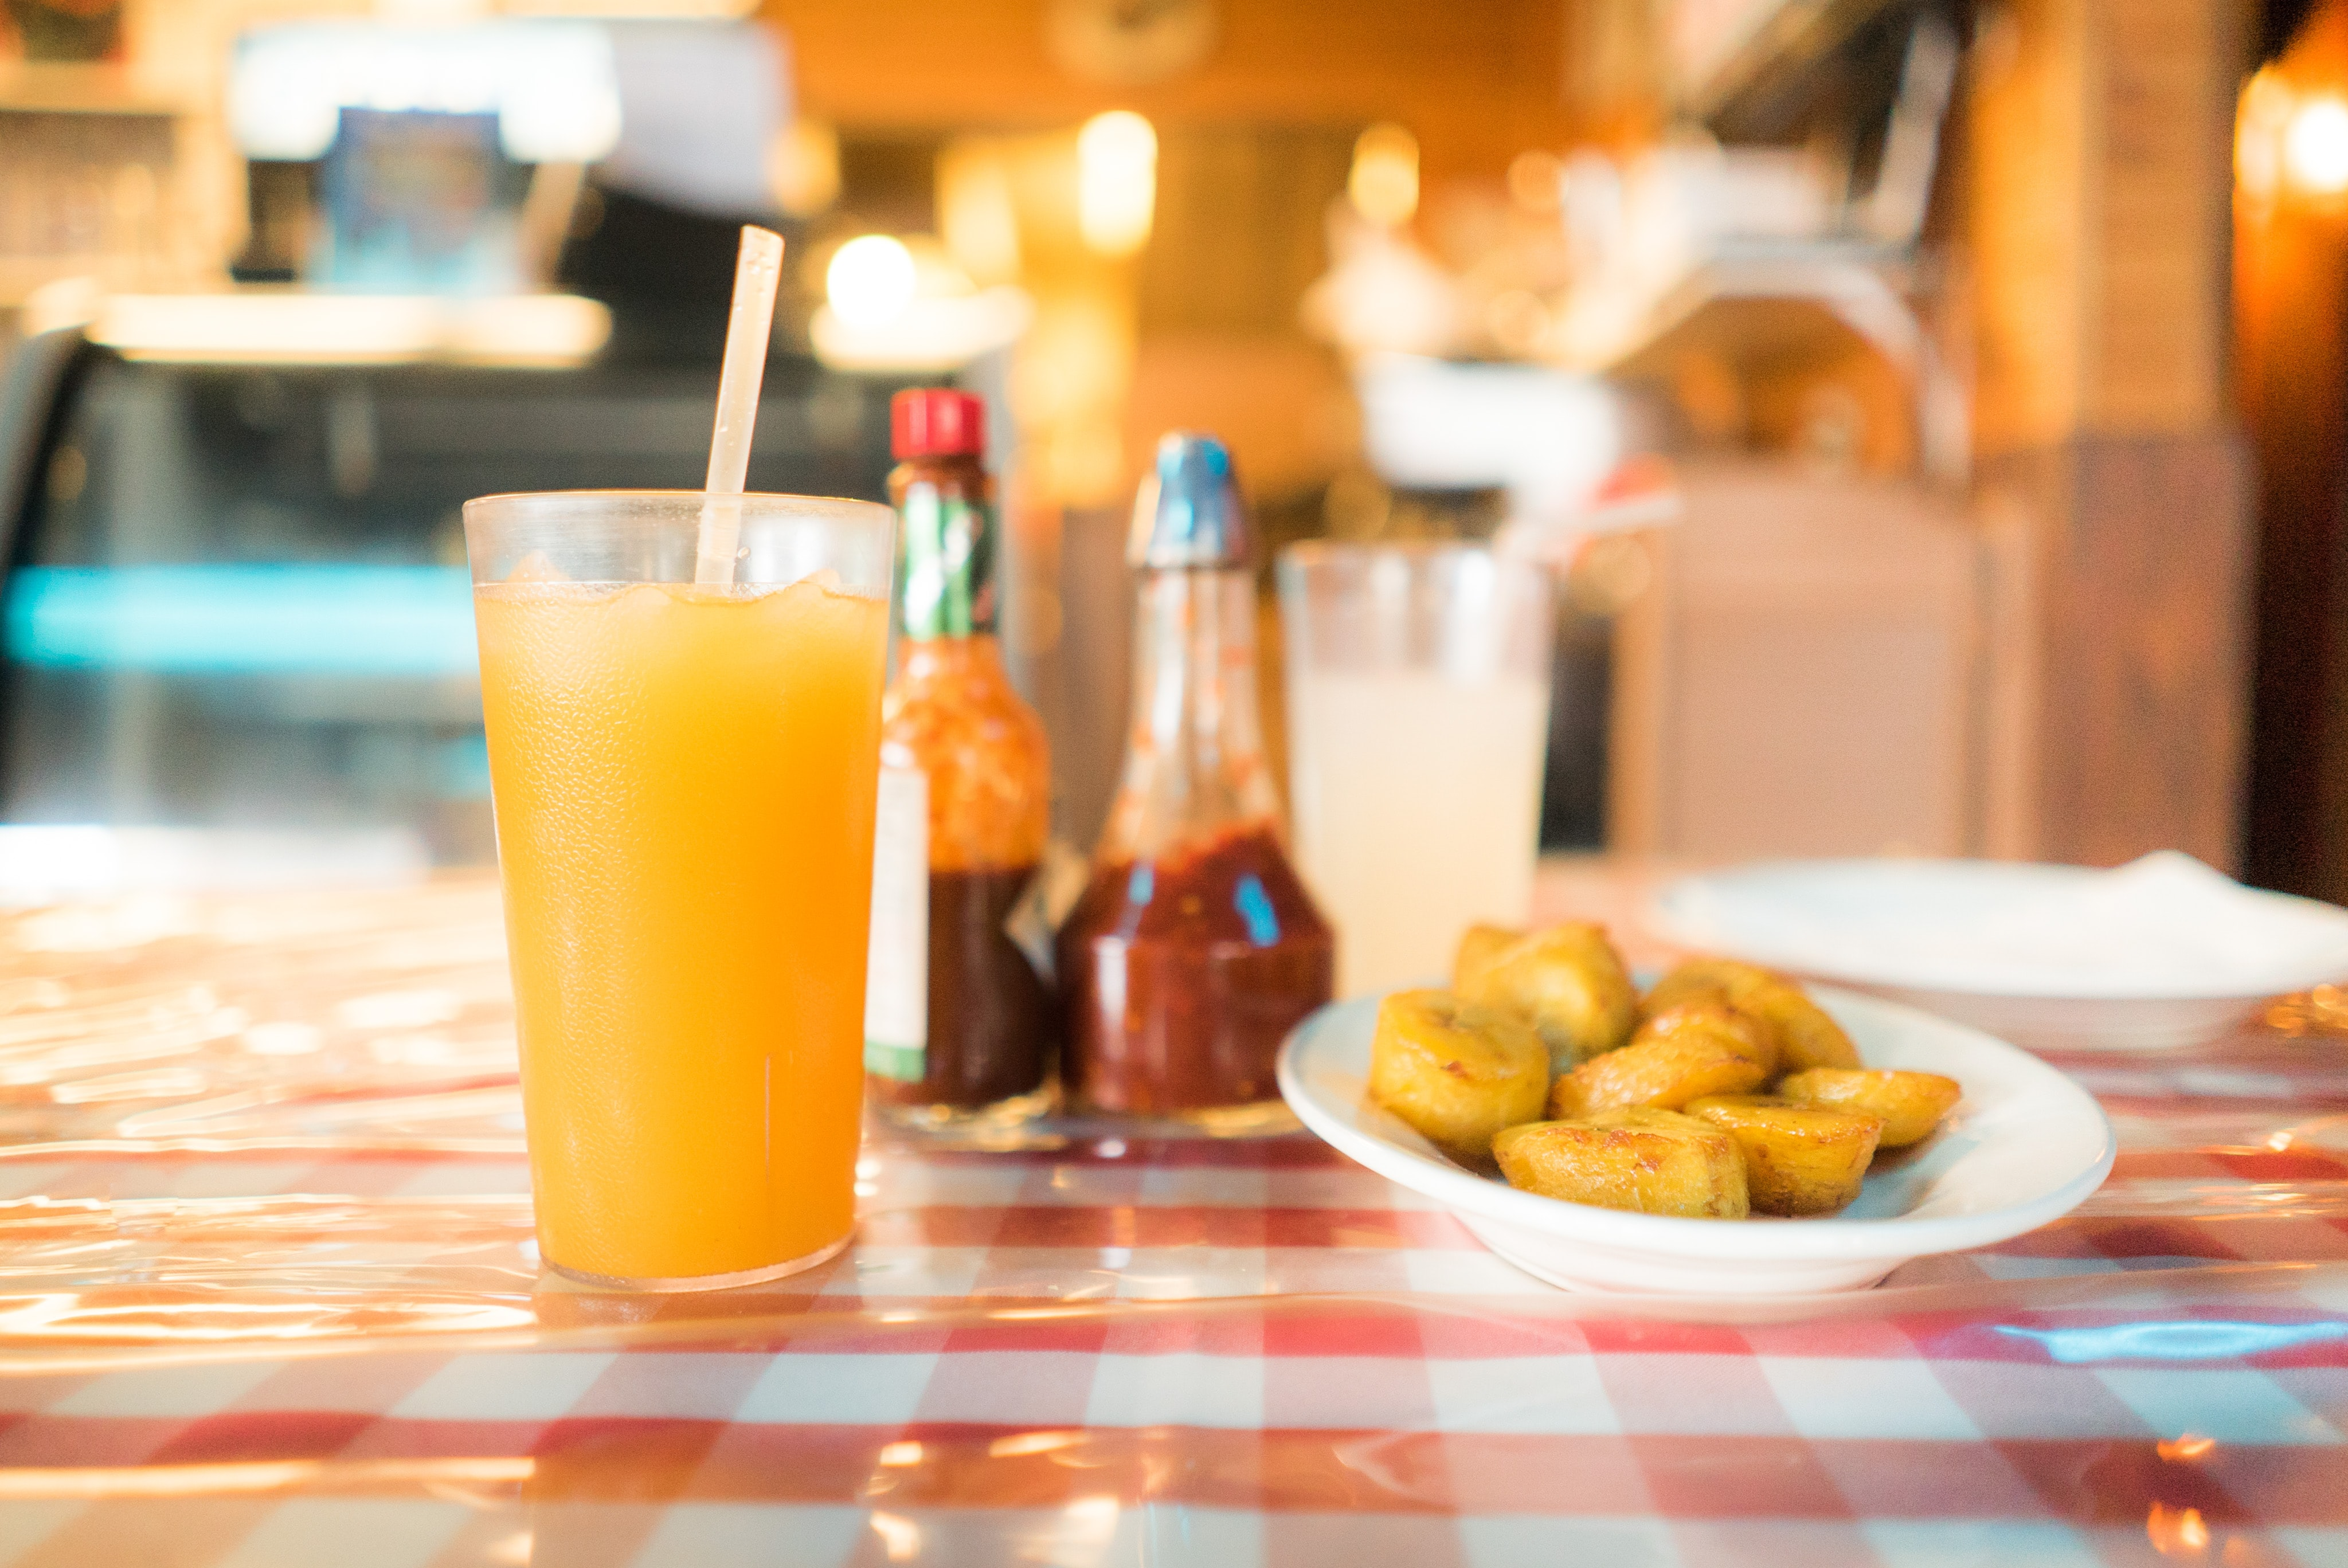 Fried potatoes next to a glass of juice and sauce bottles on a restaurant table